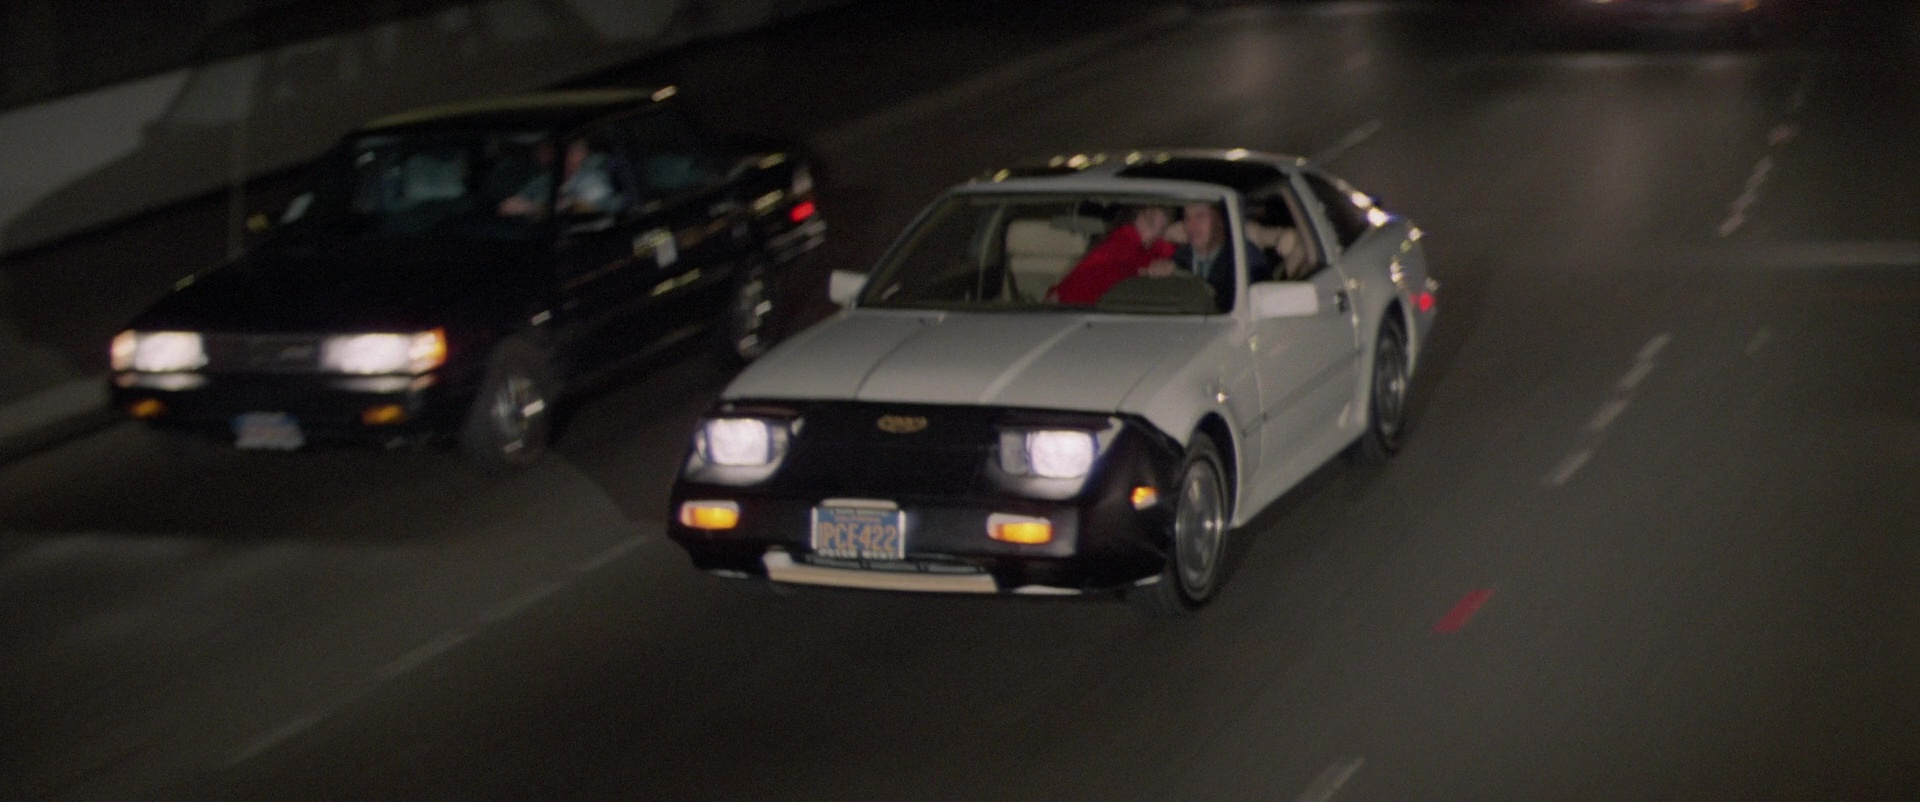 Used Cars In Philadelphia >> Nissan 300ZX 2+2 [Z31] White Car Used by Bruce Willis in ...